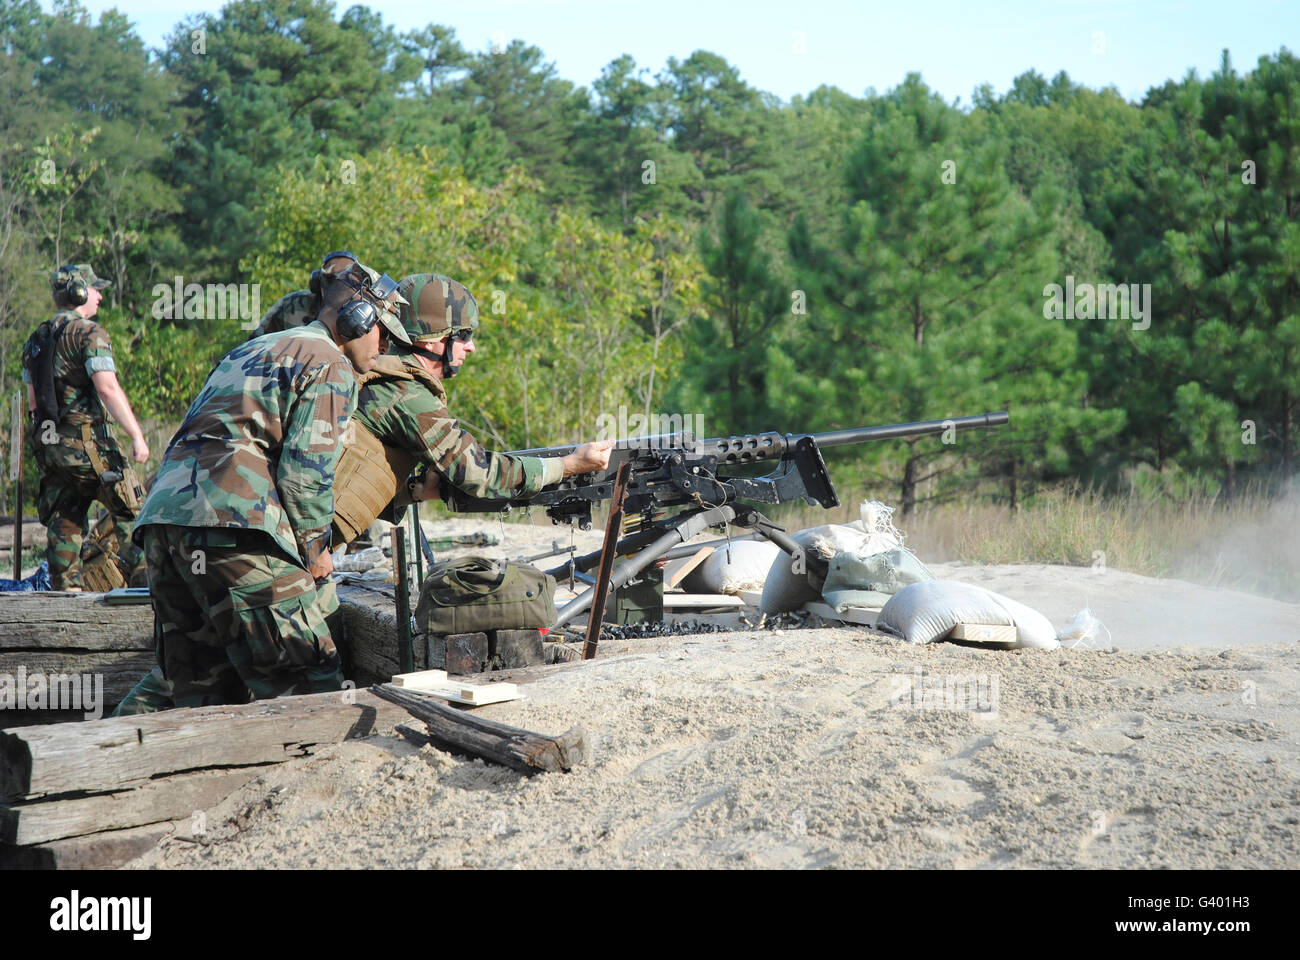 A soldier charges a .50-caliber machine gun on the firing range. - Stock Image